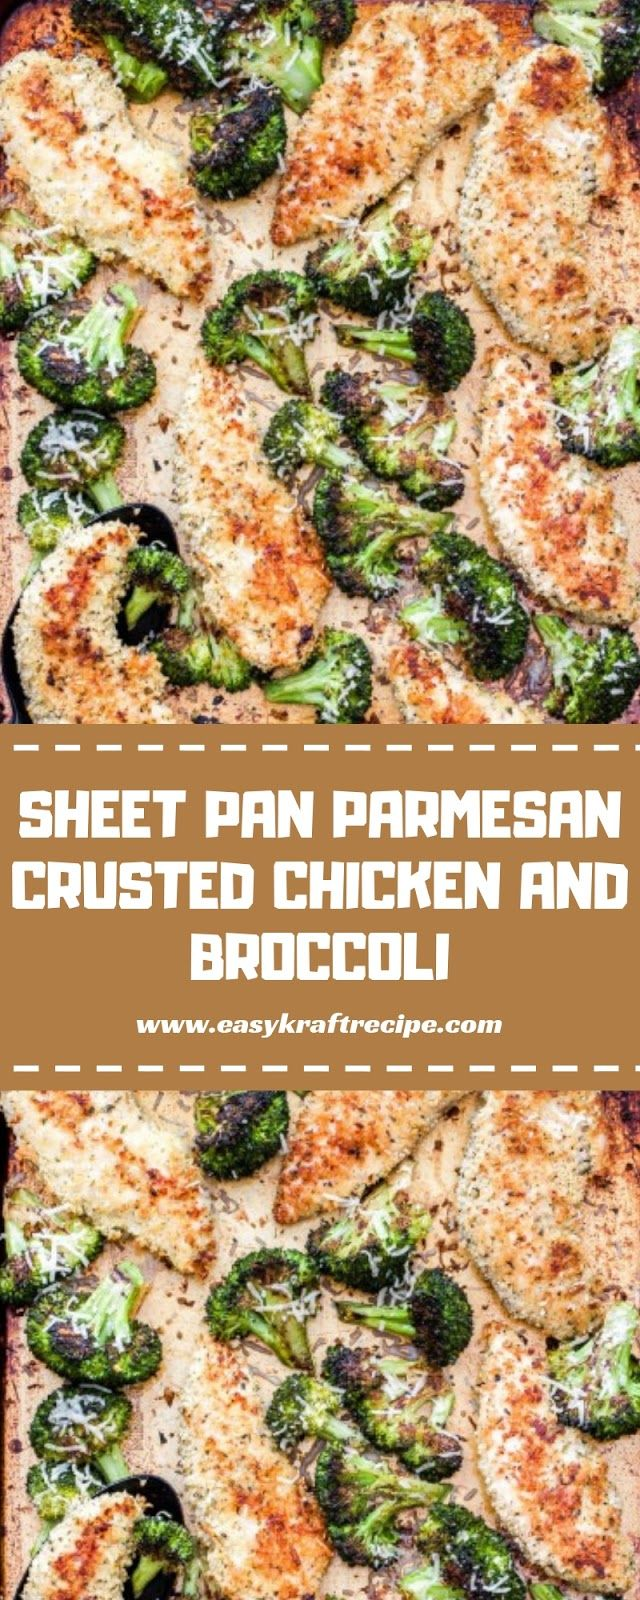 SHEET PAN PARMESAN CRUSTED CHICKEN AND BROCCOLI